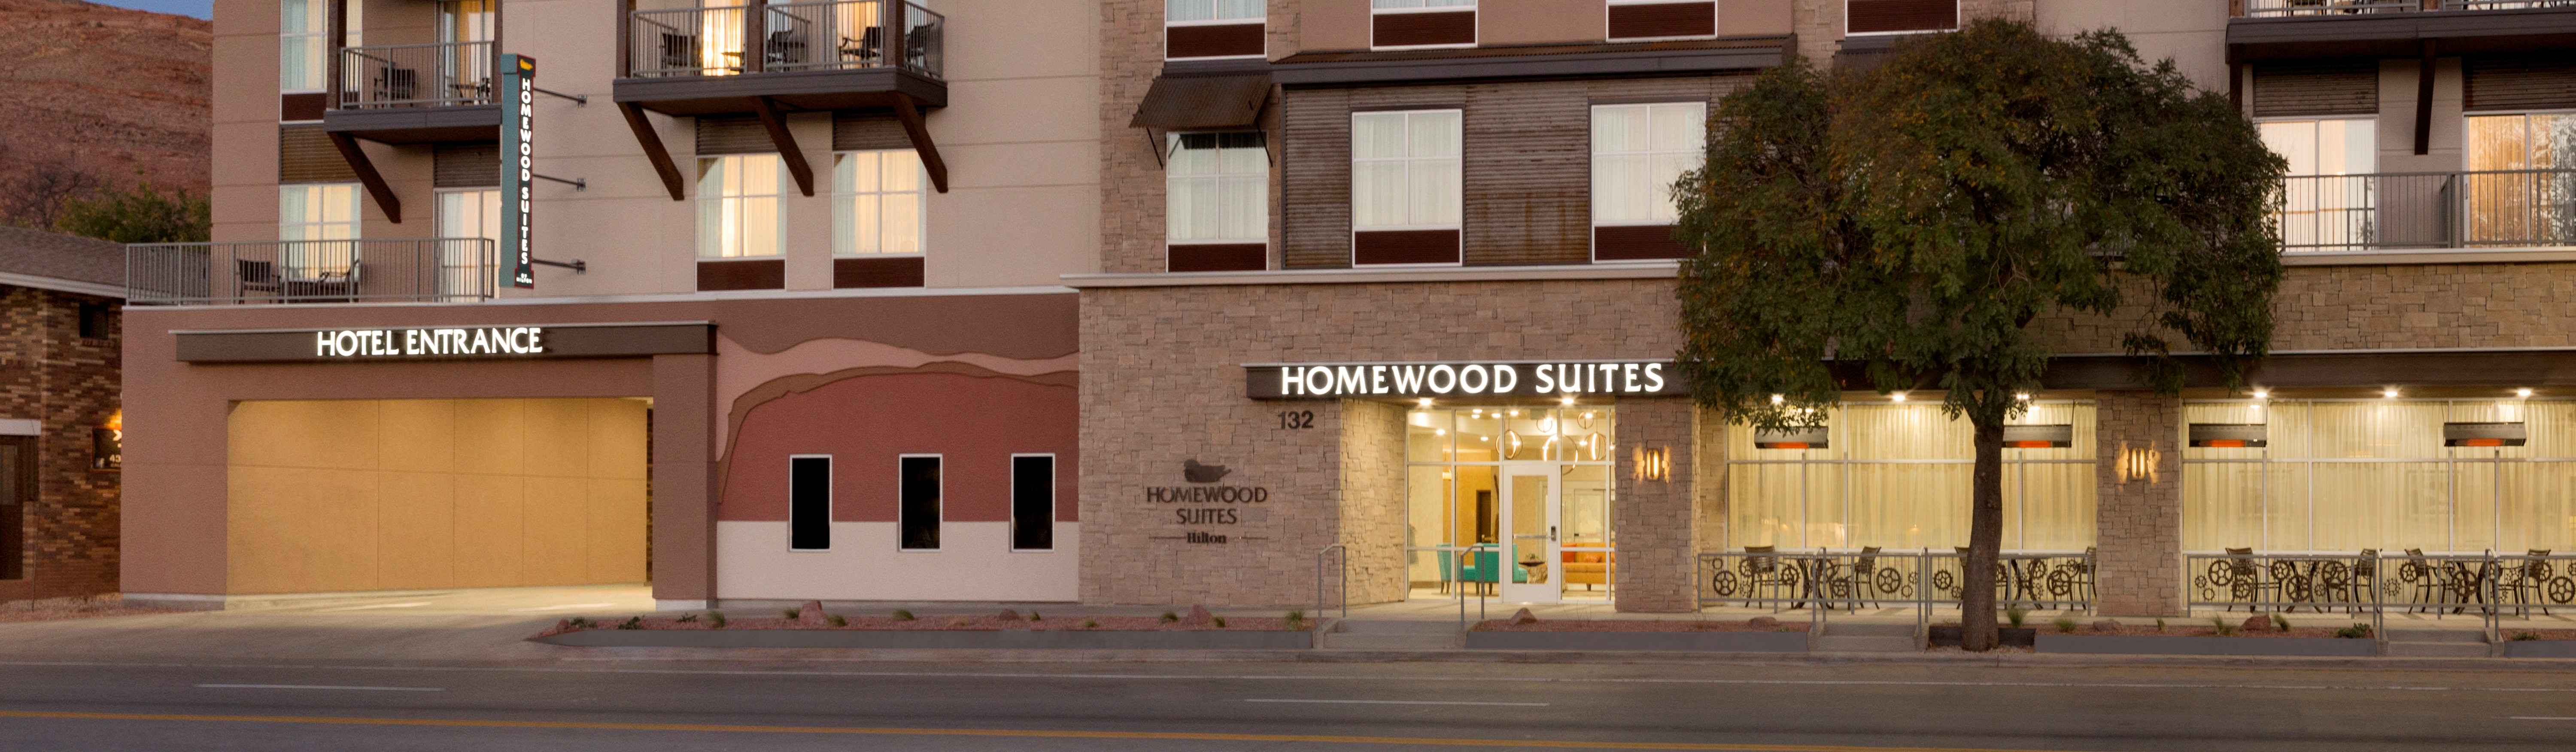 Homewood Suites by Hilton Moab – Exterior – 1176373